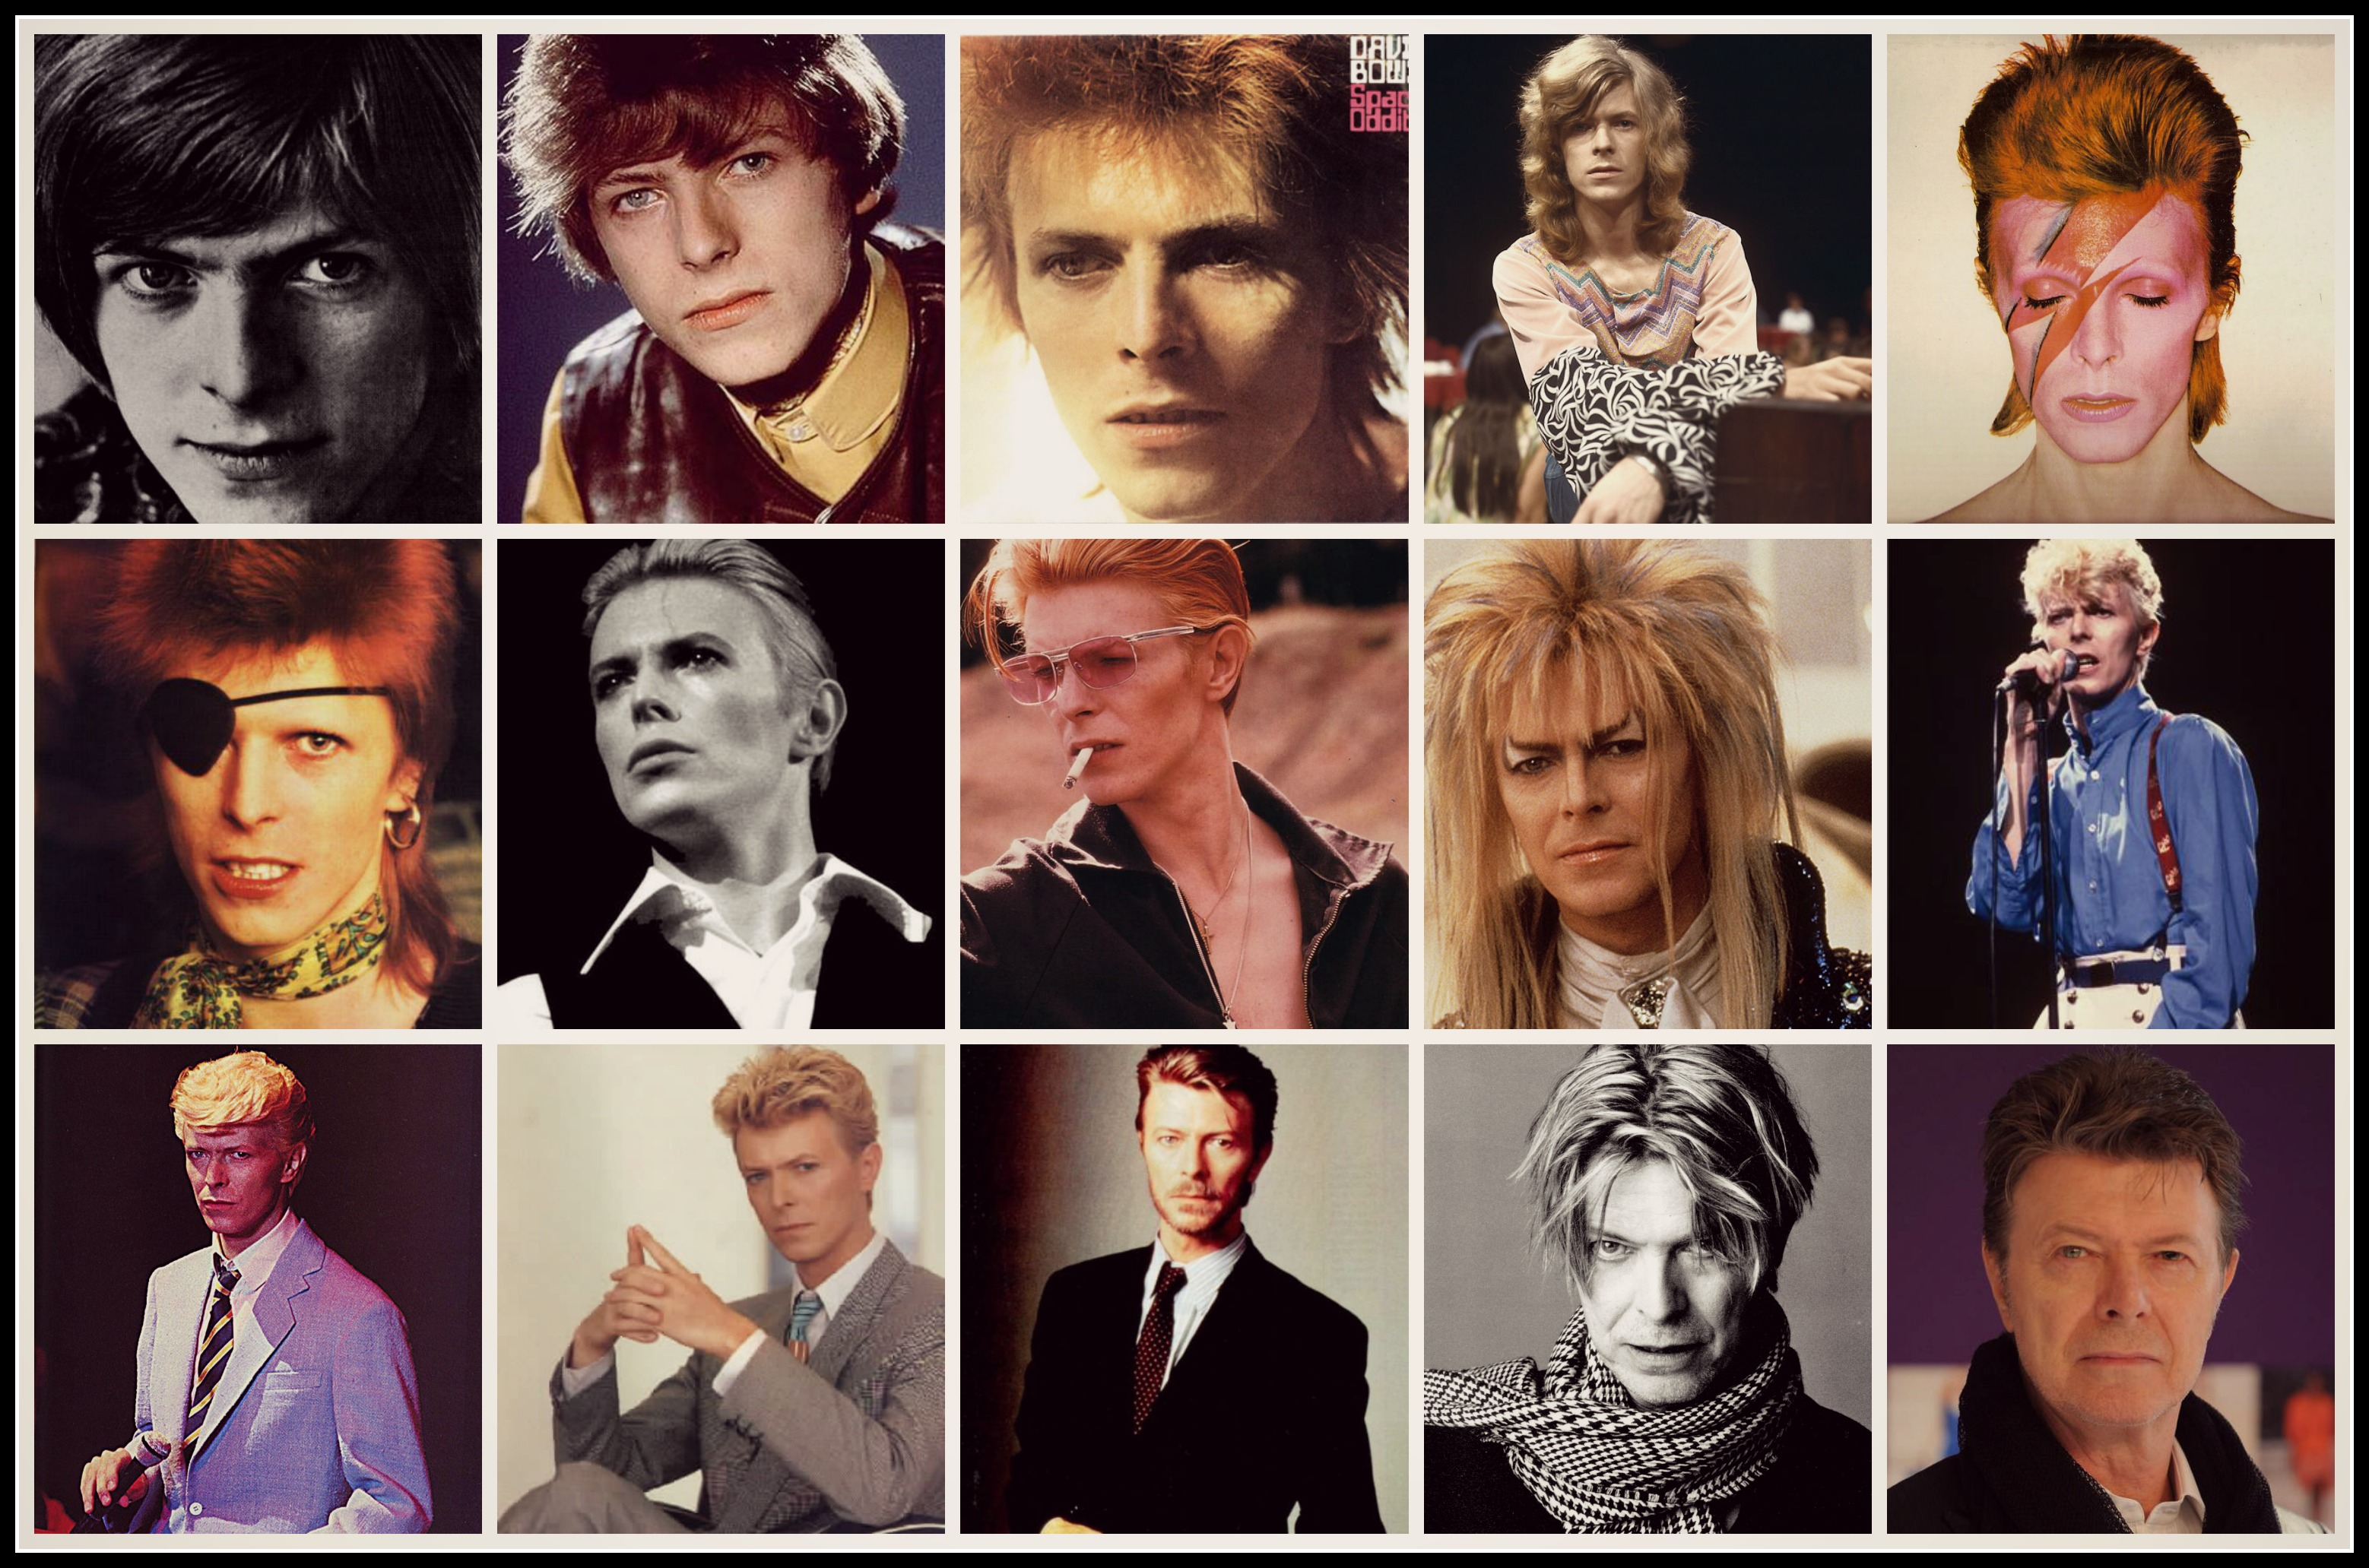 Bowie the-many-faces-of-david-bowie